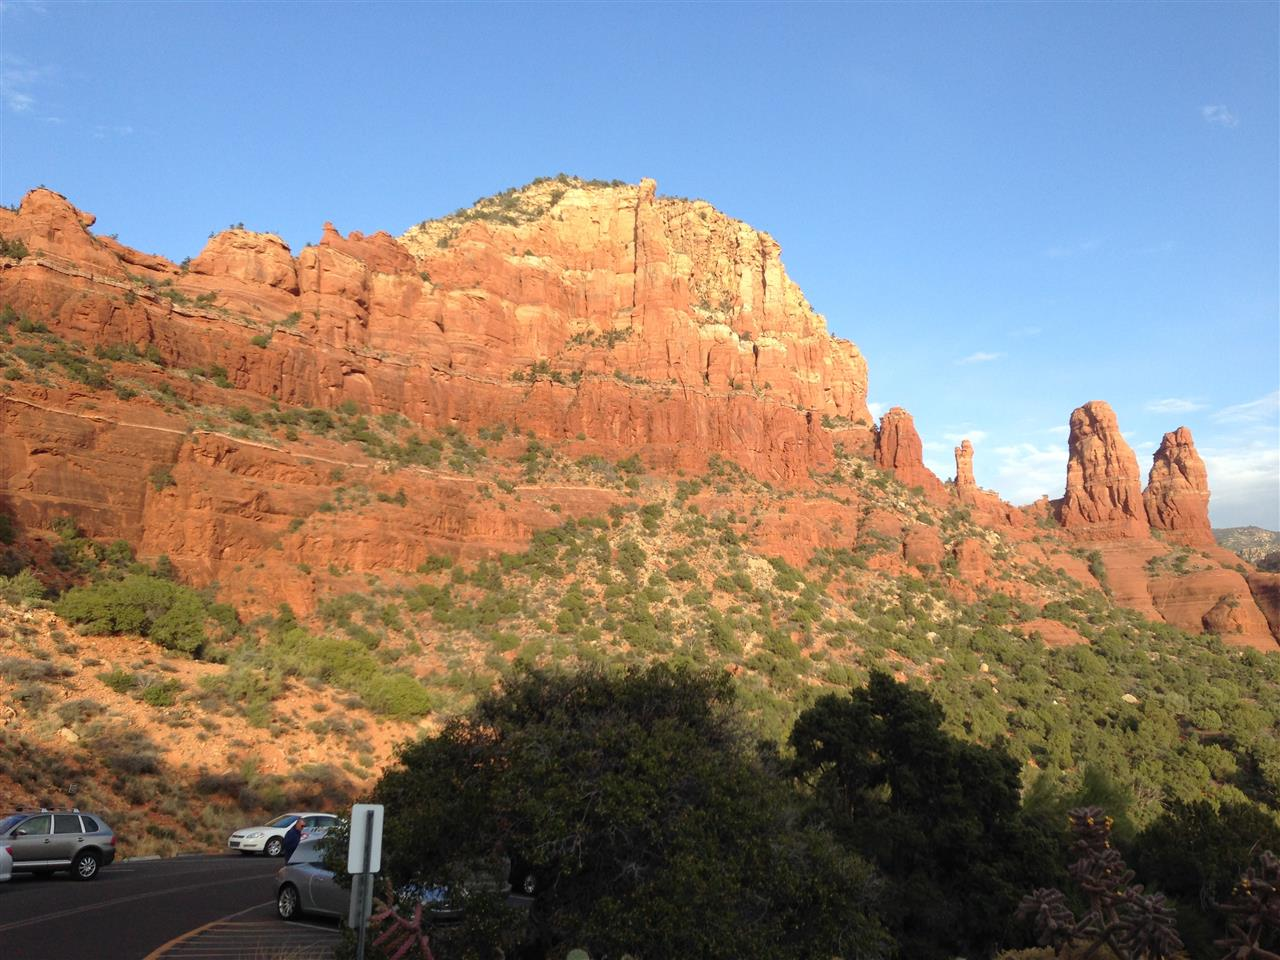 Highway 89A, Sedona, AZ The Gorgeoous Red Rock Canyons of Sedona, Arizona!